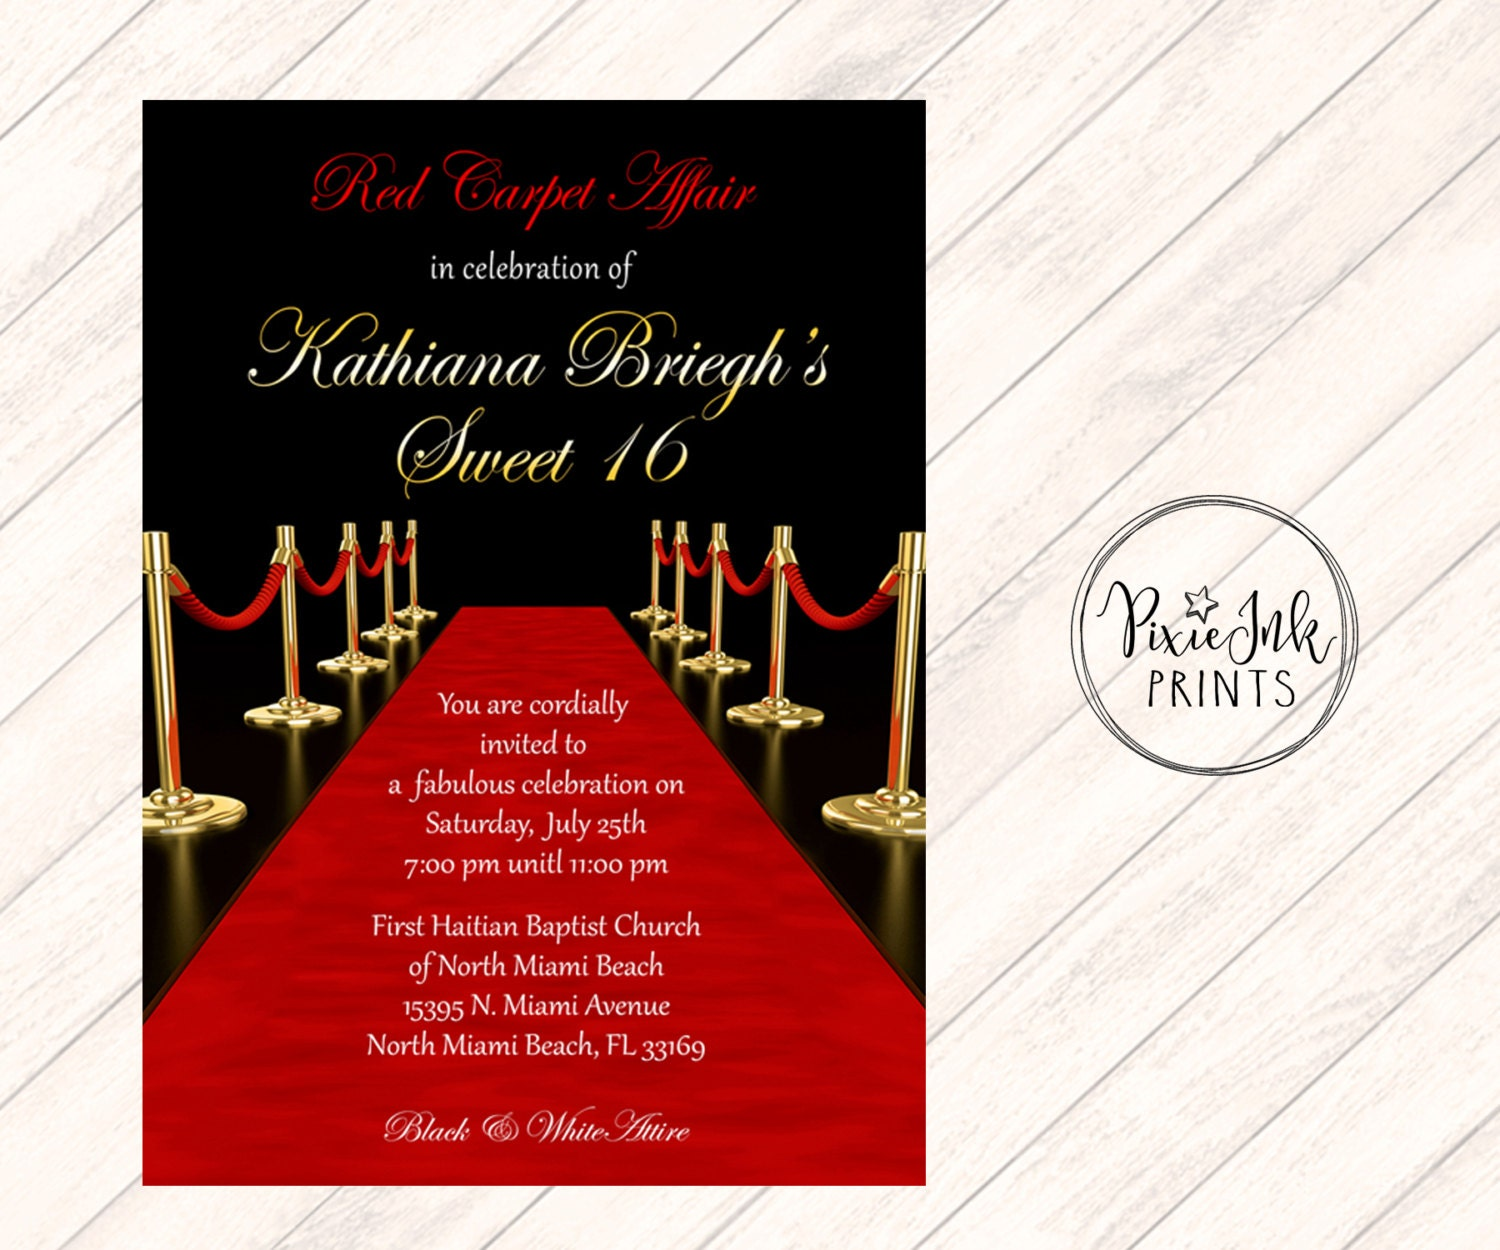 Fine you are cordially invited to my birthday party inspiration red carpet affair invitation hollywood sweet 16 invite red filmwisefo